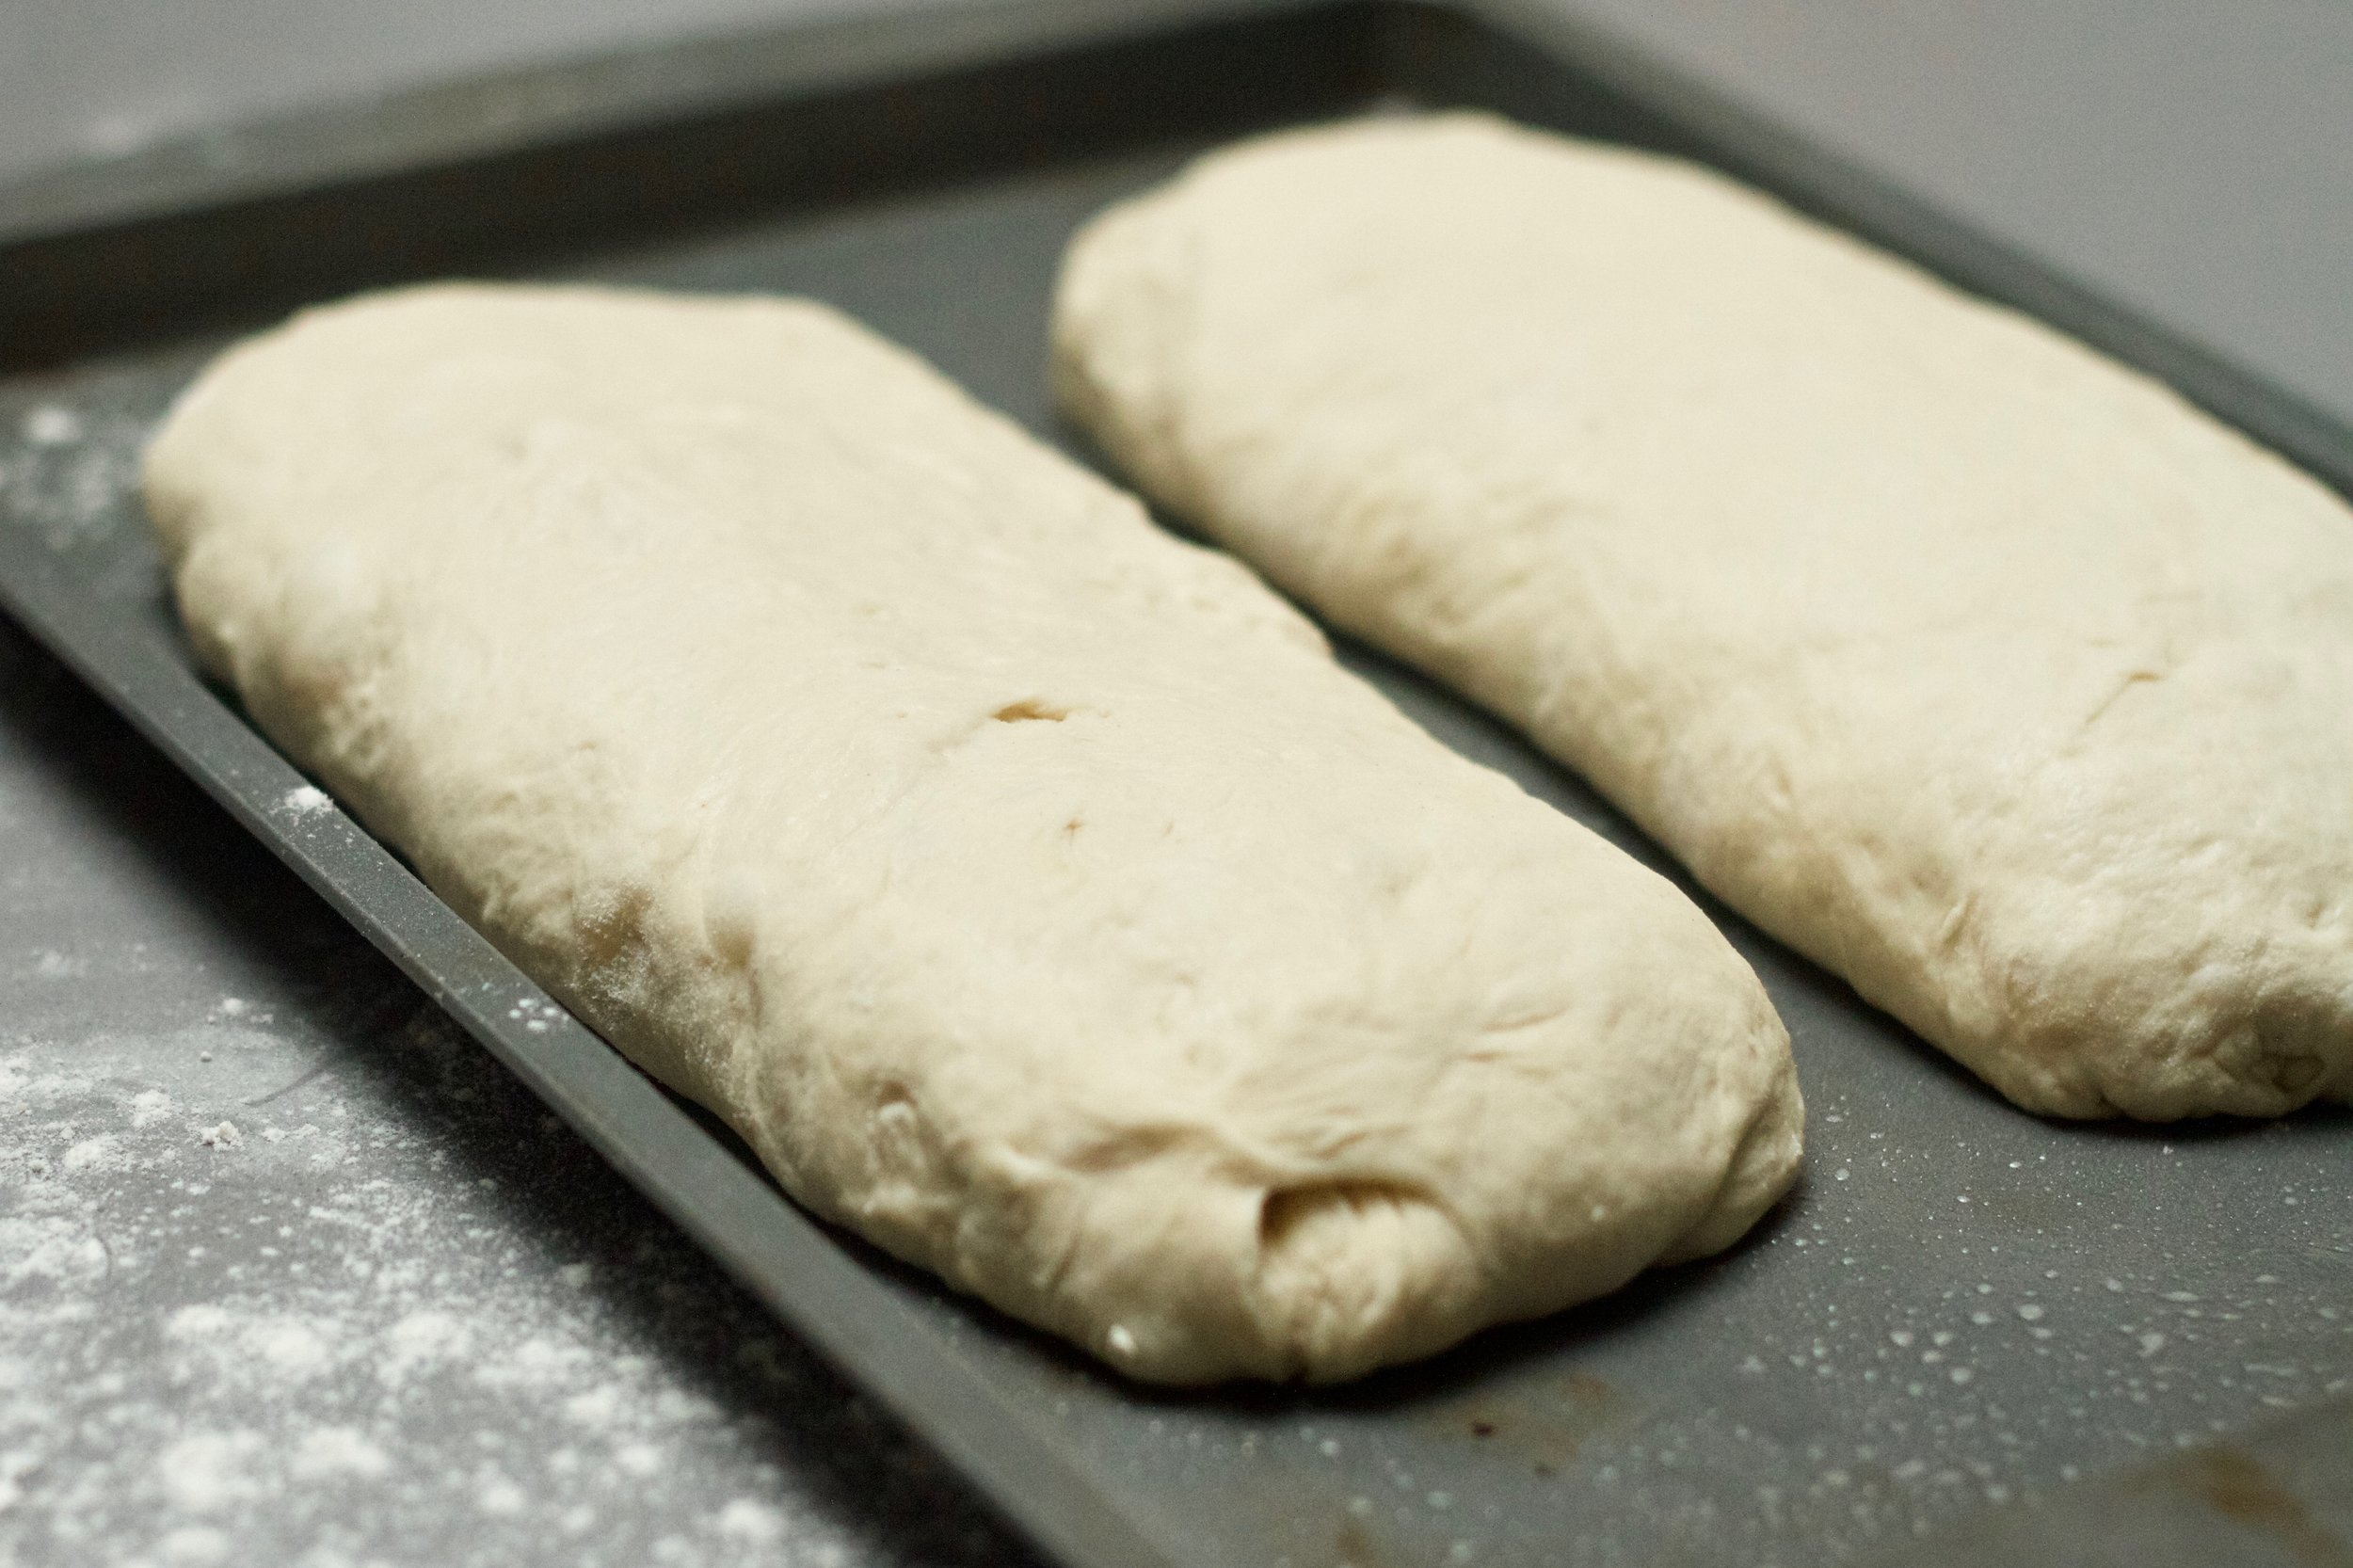 Dividing the dough after the first rise